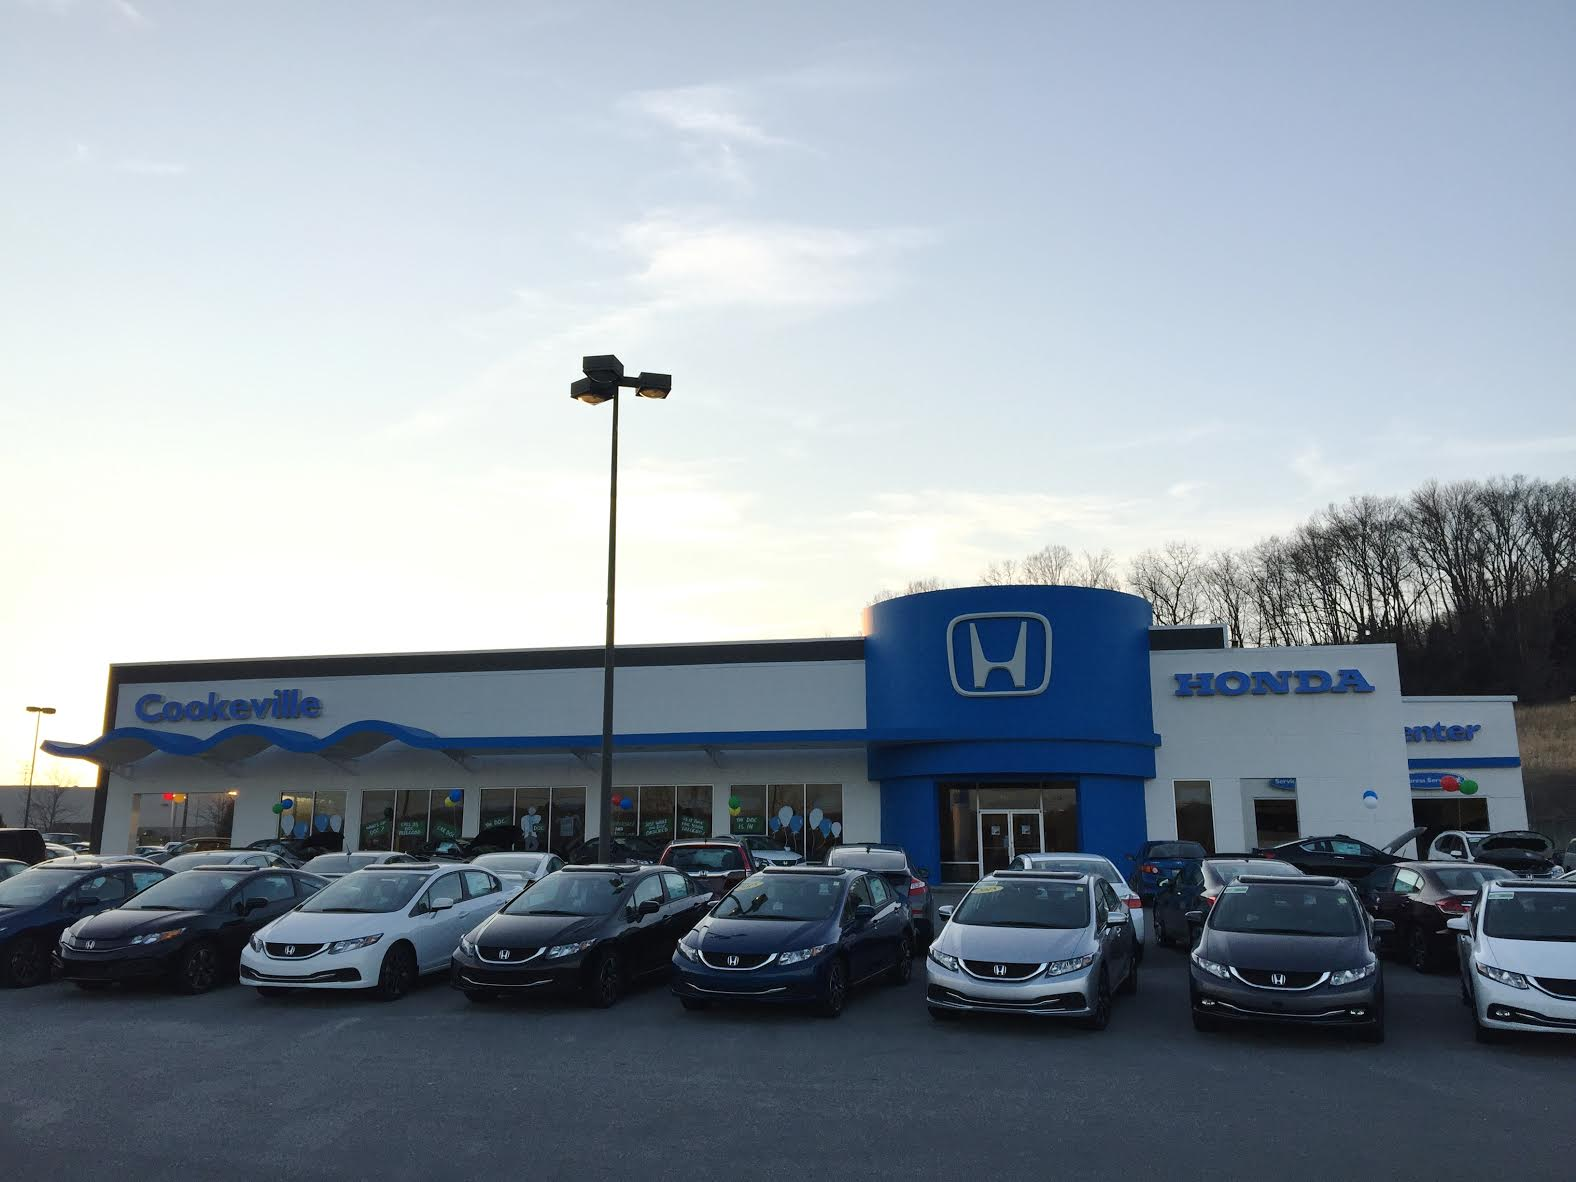 Honda Dealer near Cookeville TN